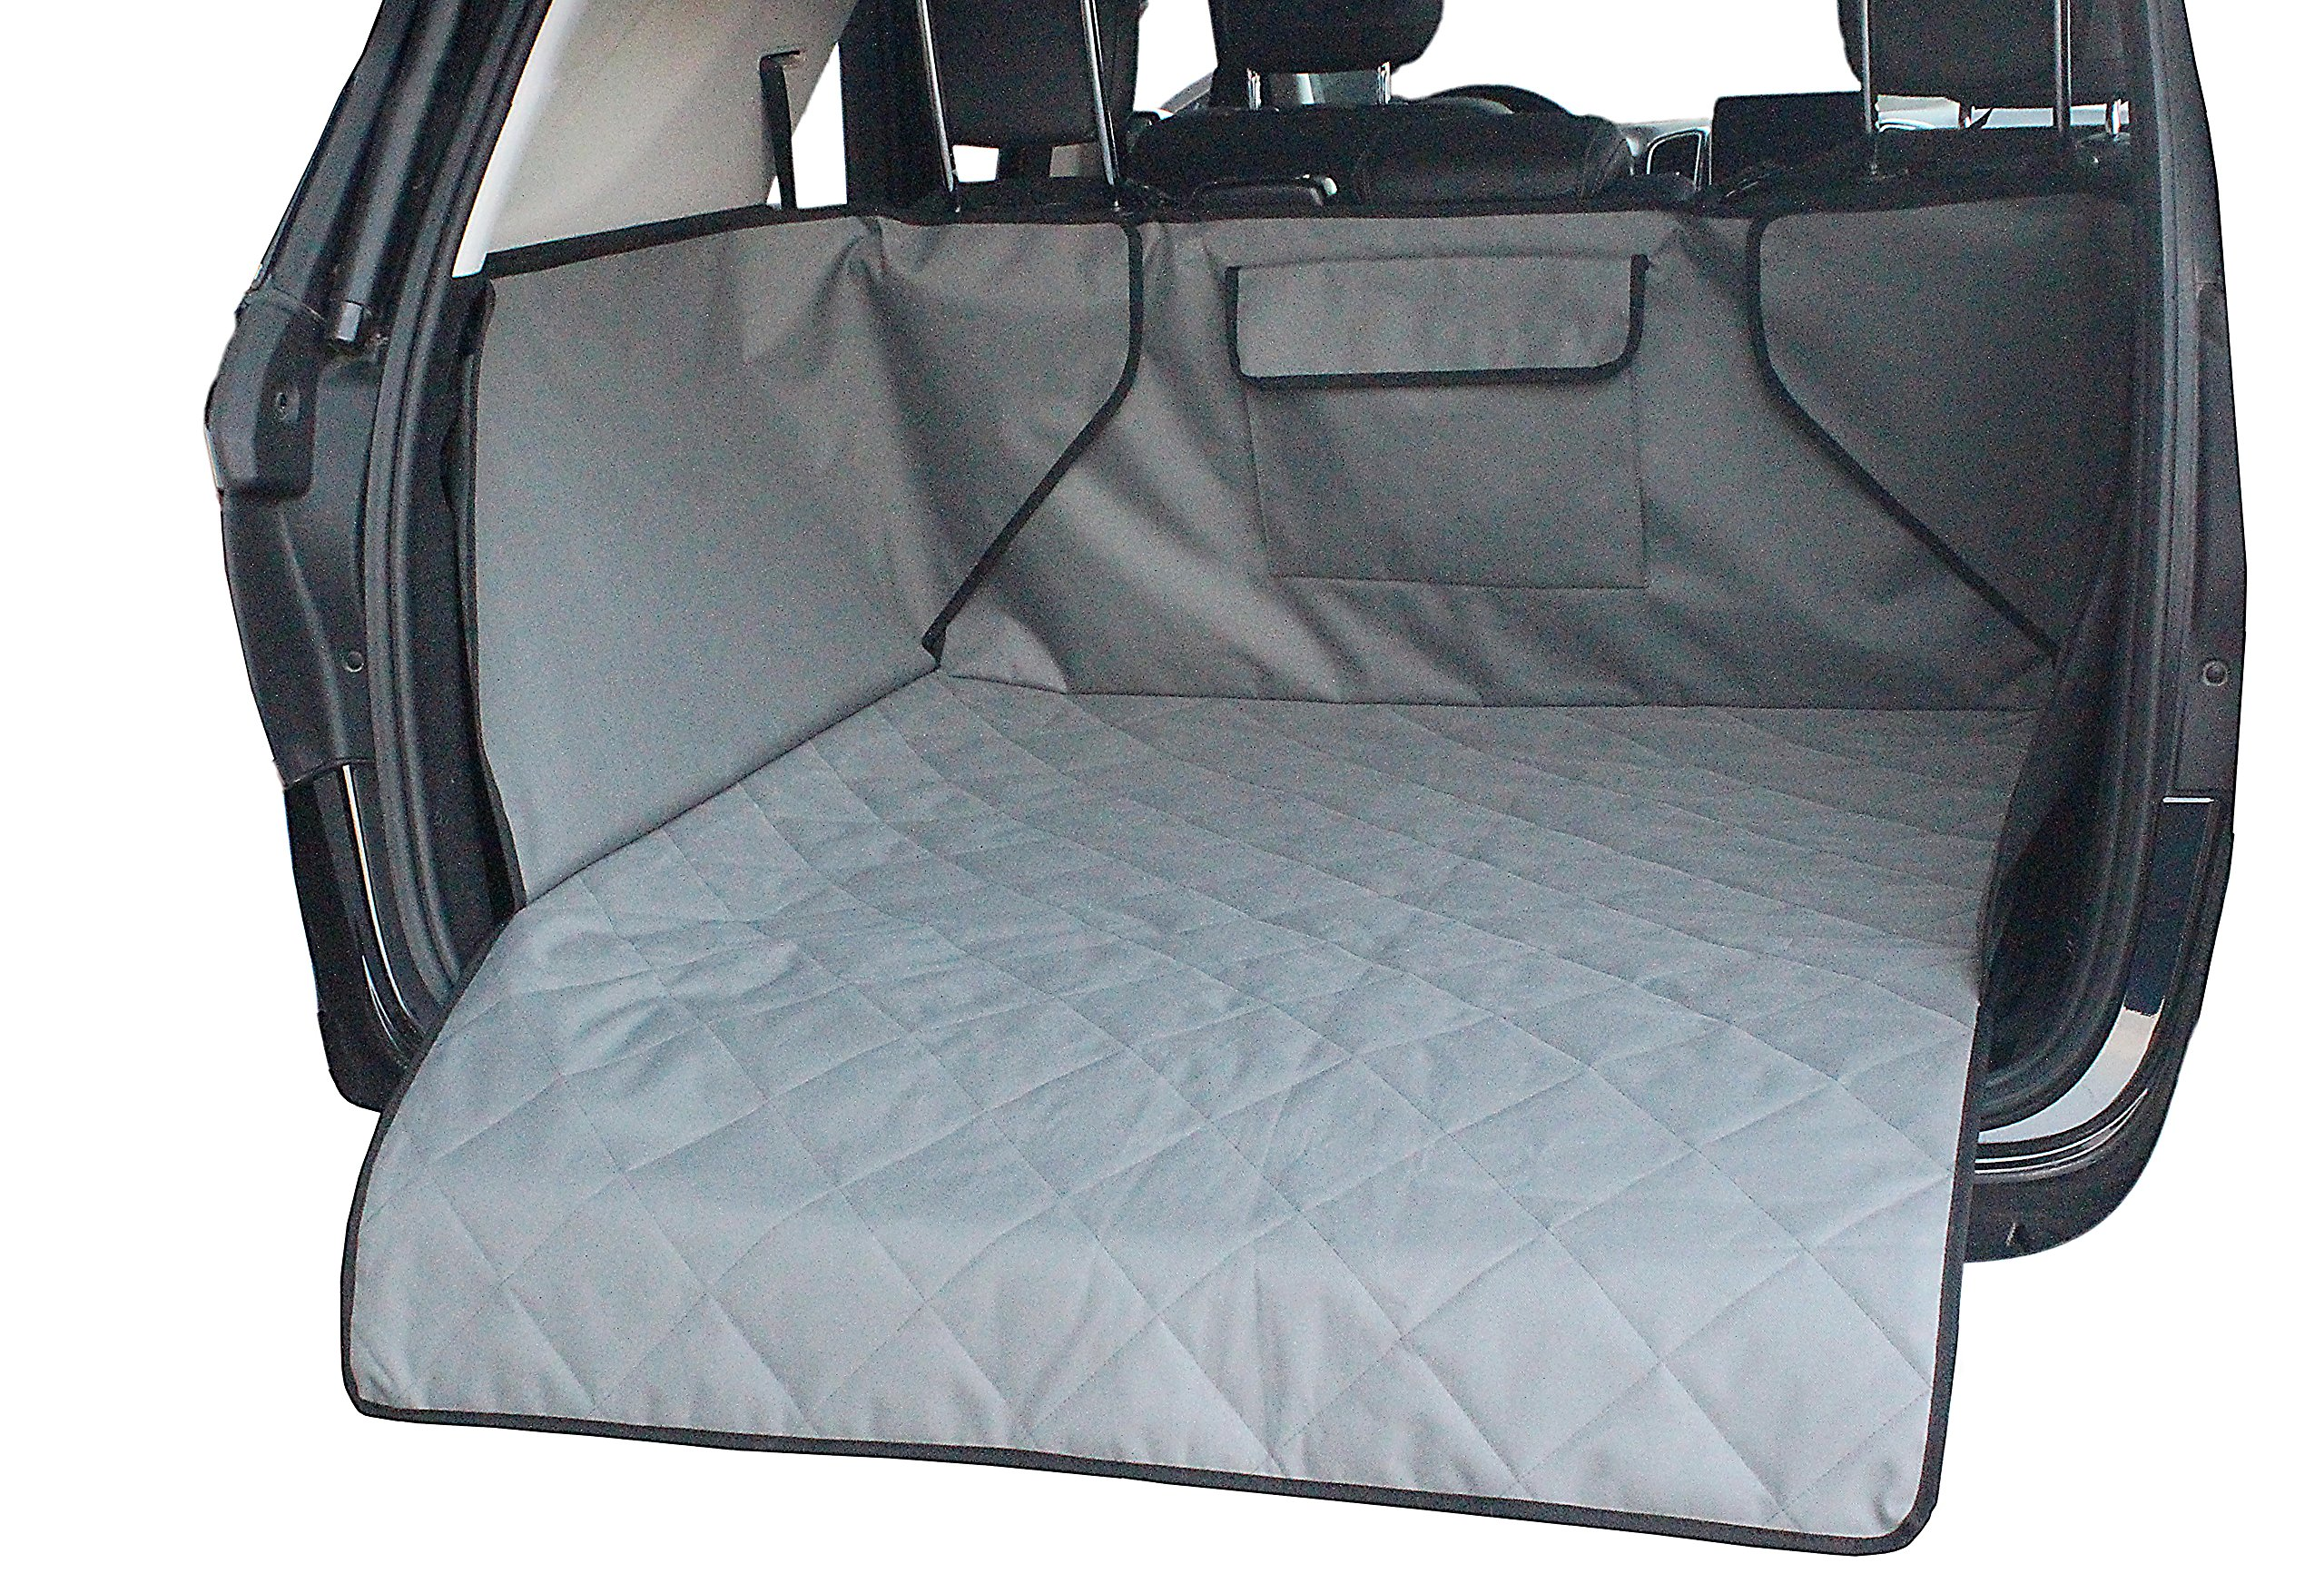 INNX Quilted SUV Dog Cargo Liner, Dog Cargo Cover for SUV, Waterproof to protect your SUV, Minivans, Jeeps (Gray, 52'' Lx41 Wx17.7 H)